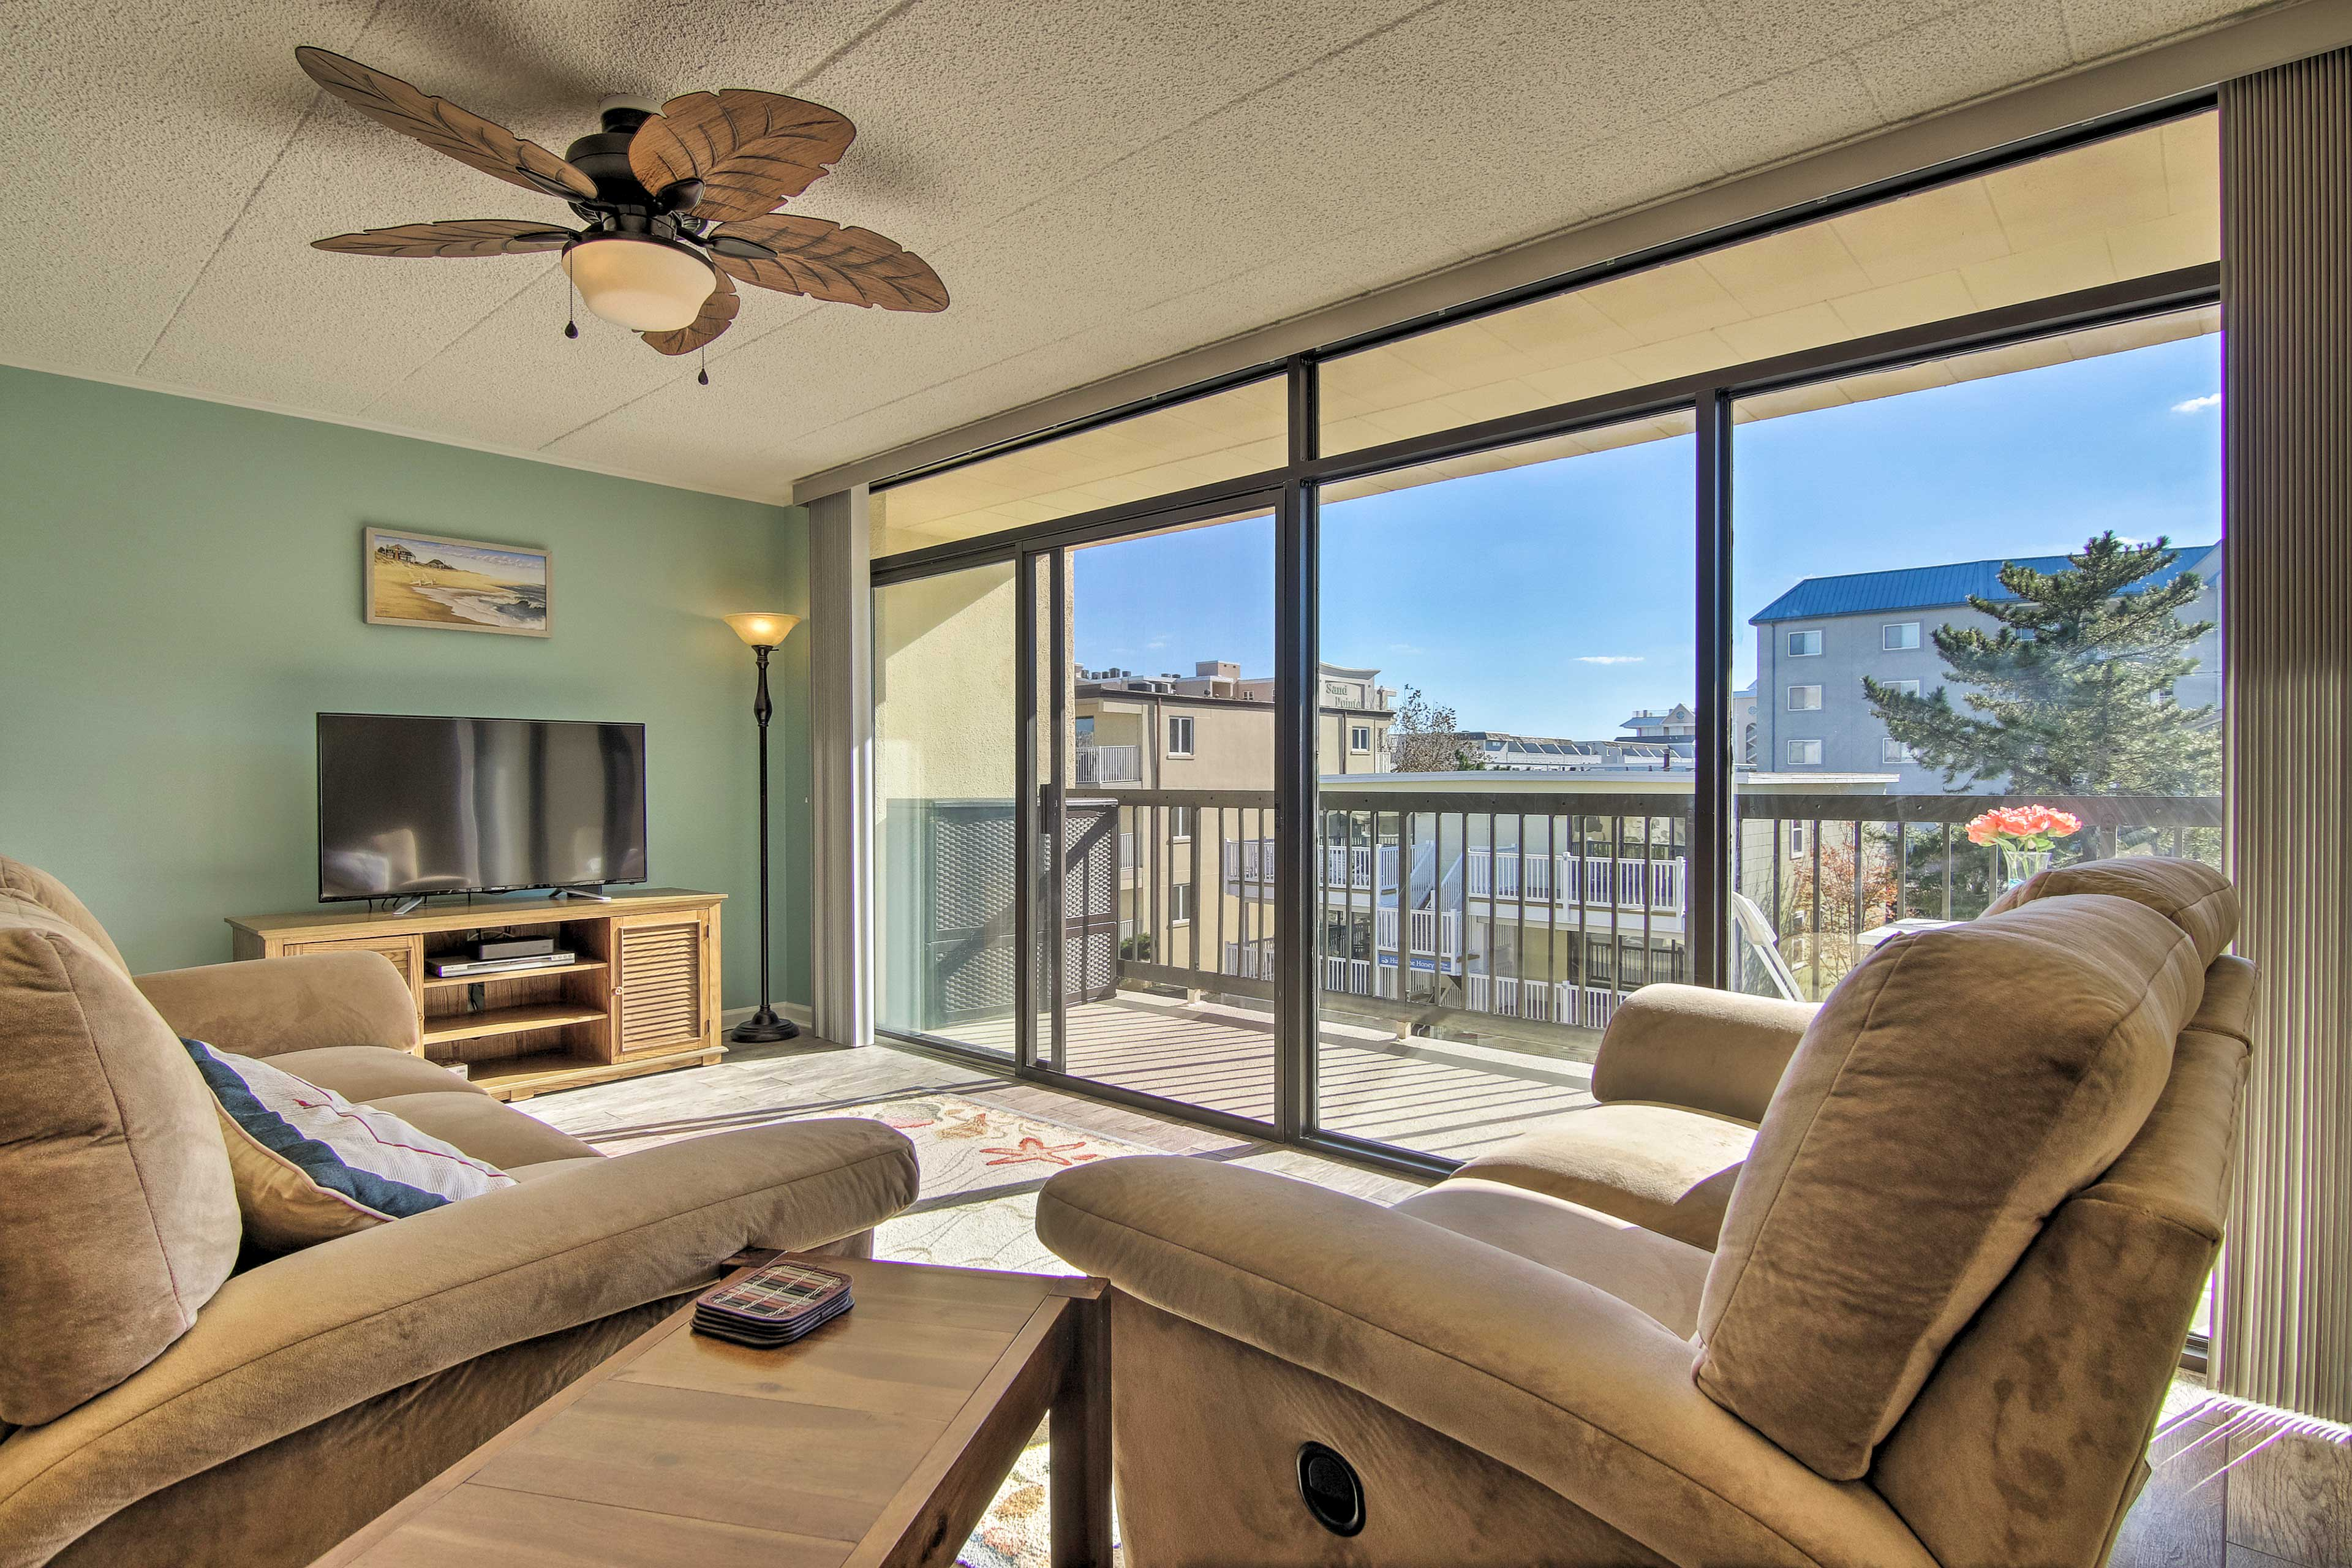 Book this vacation rental condo for a retreat in Ocean City, MD!